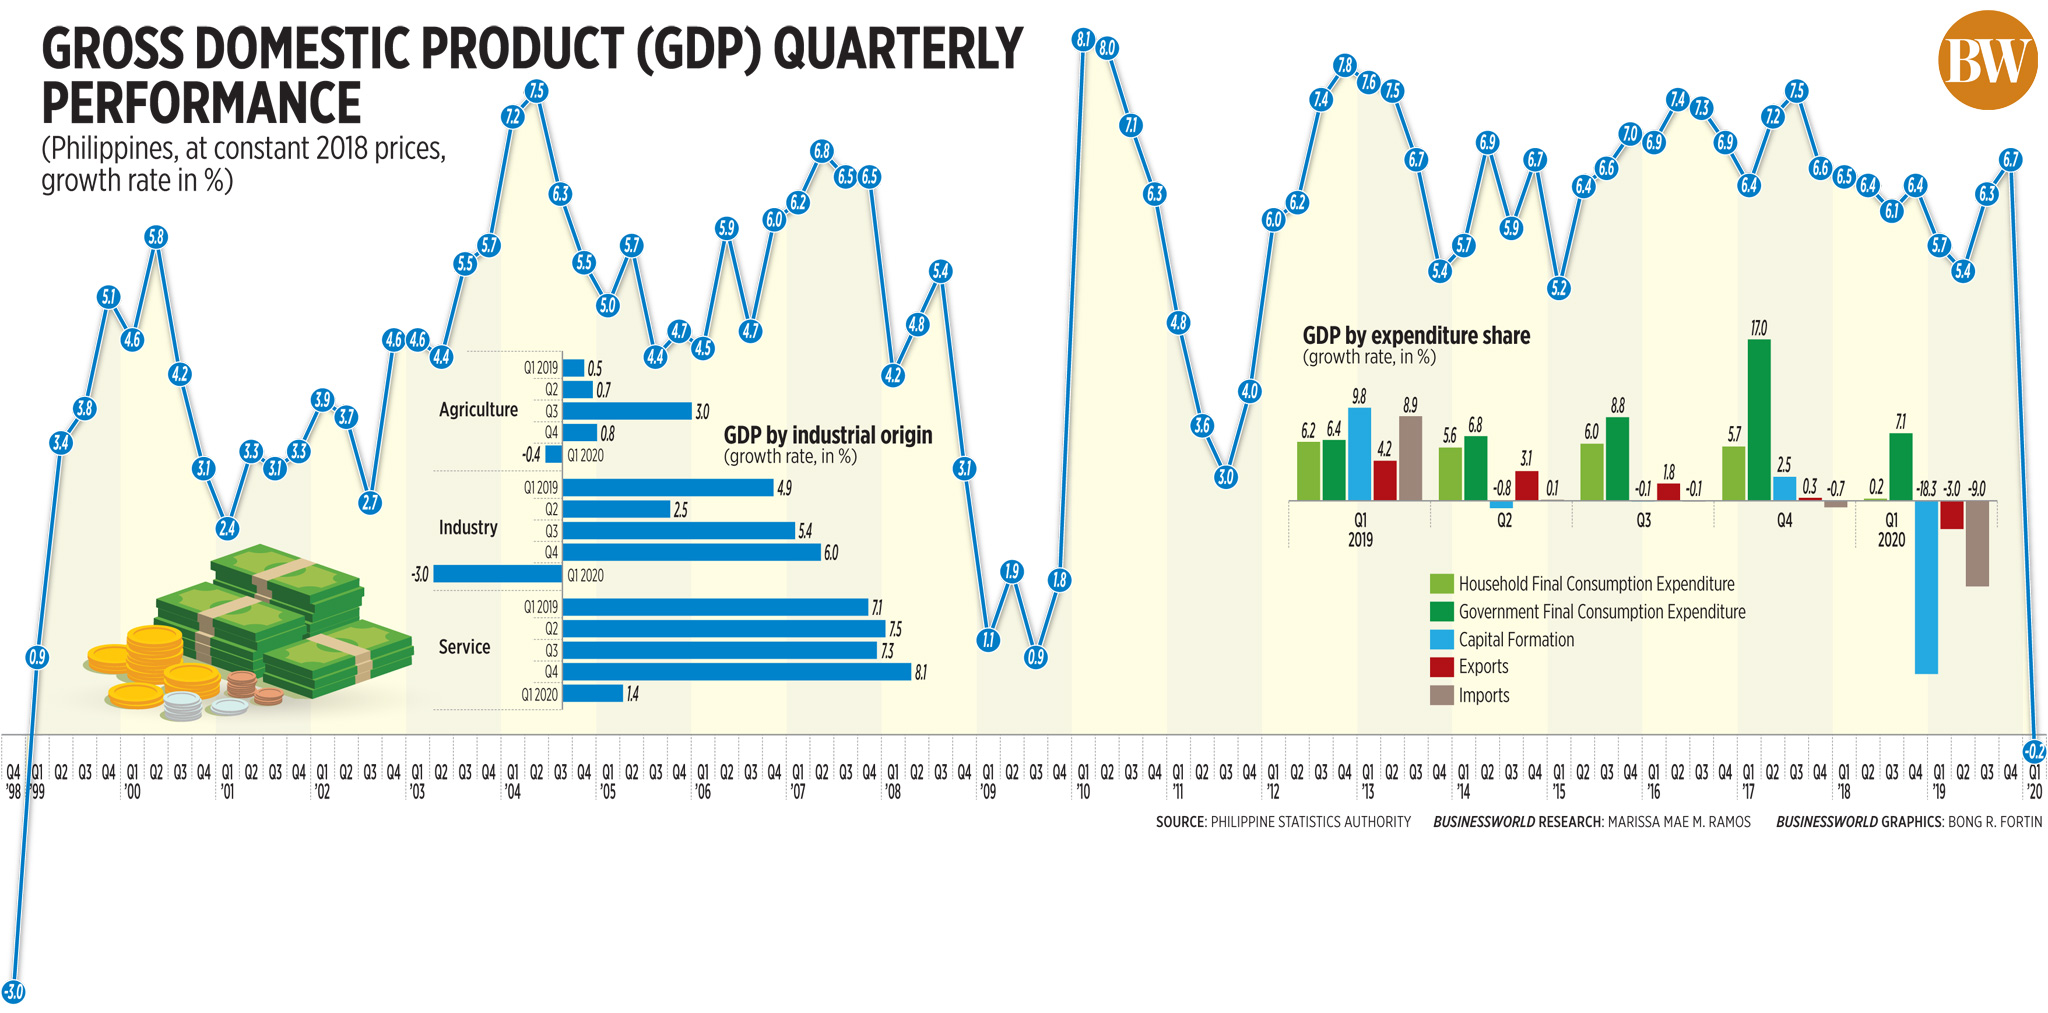 Gross domestic product quarterly performance (Q1 2020)